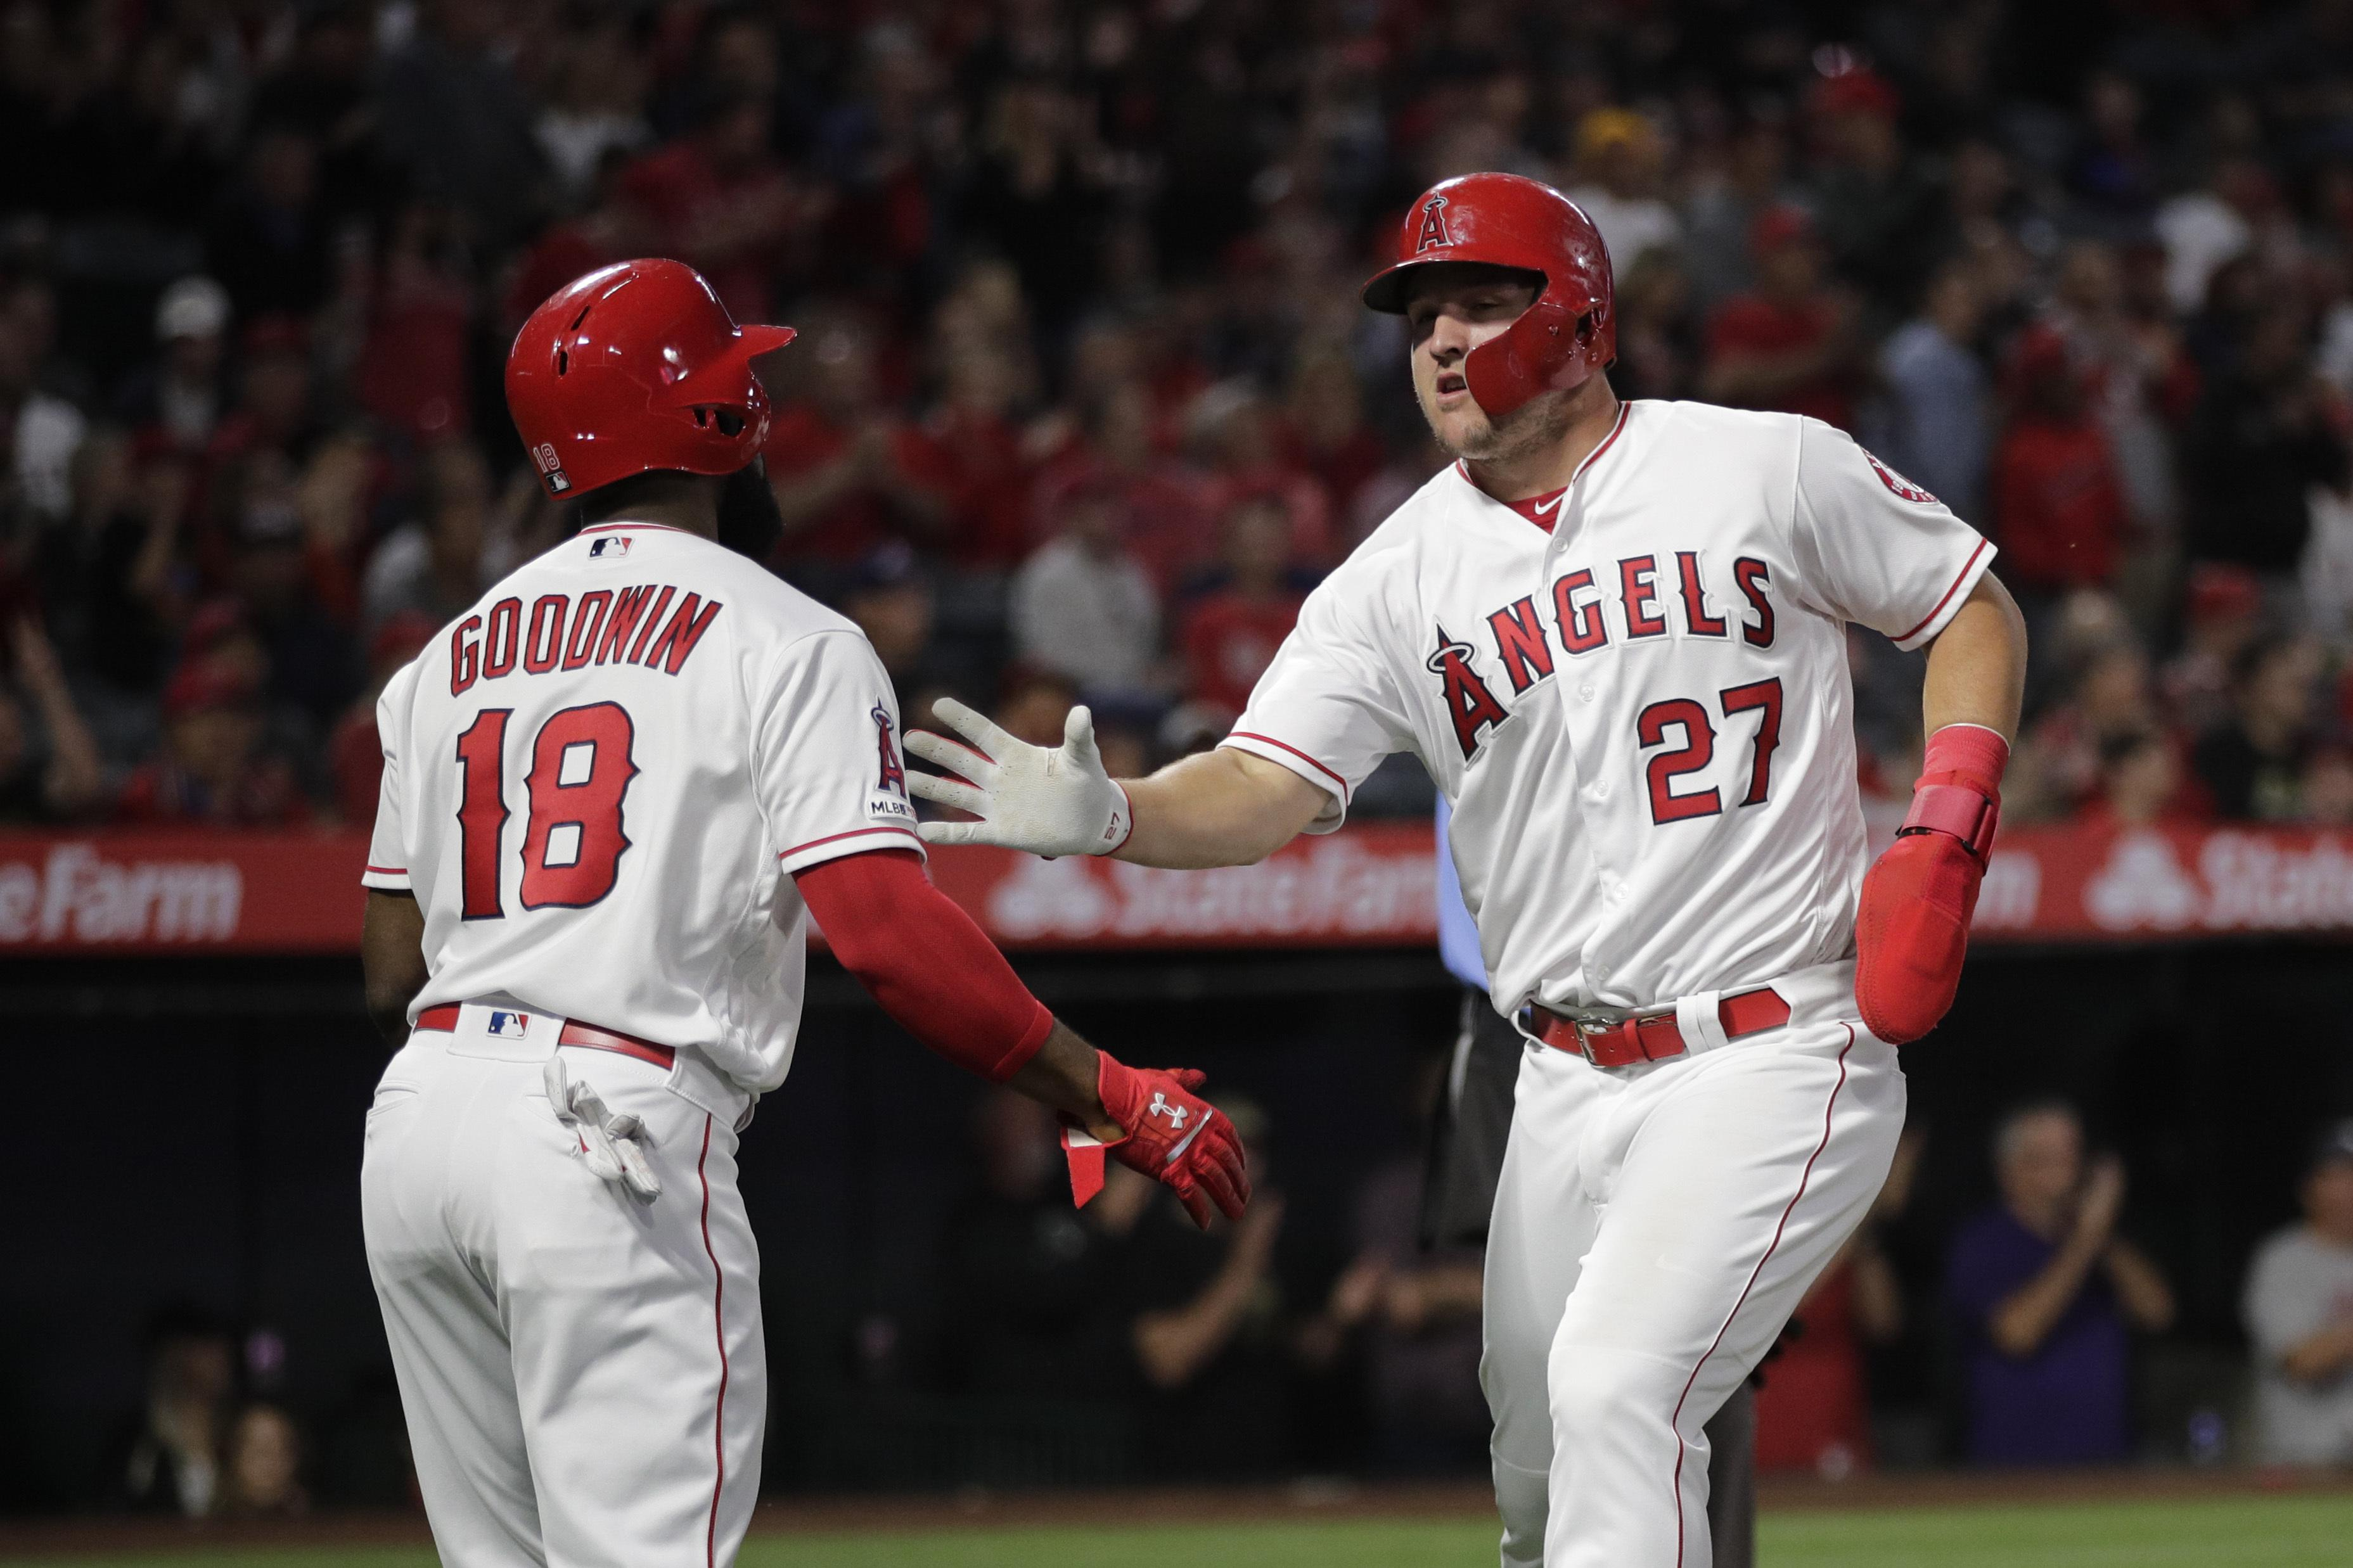 Angels Star Mike Trout Day To Day With Right Groin Strain The